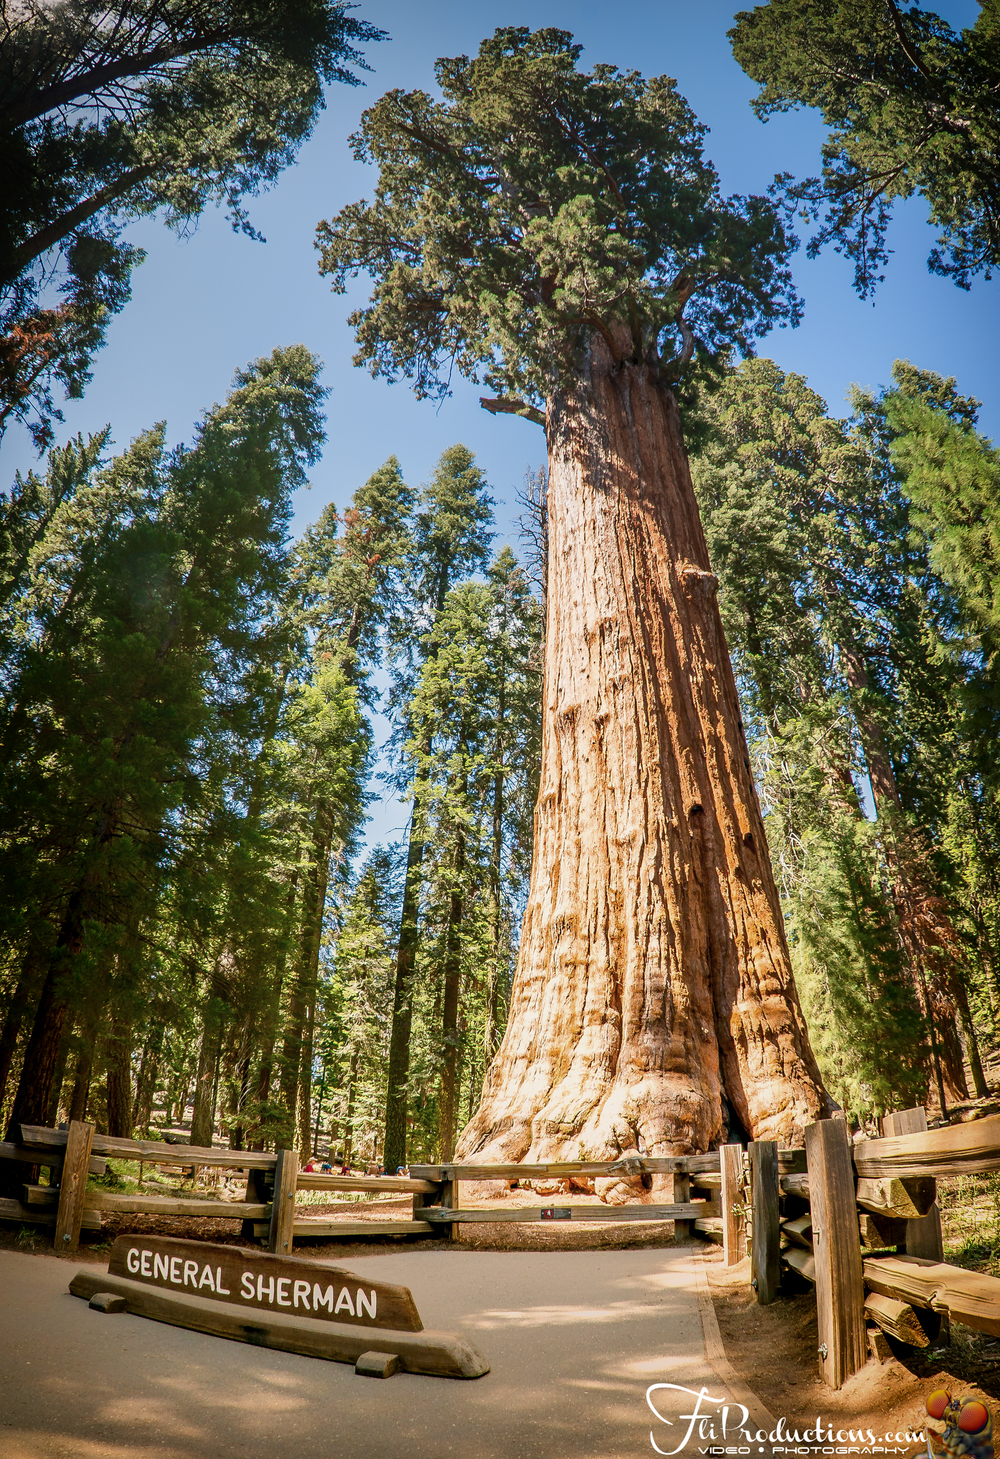 Columbine Sequoia and Kings Canyon National Parks, General Sherman, Moro Rock, Tall Tree - Sequoia National Park ...